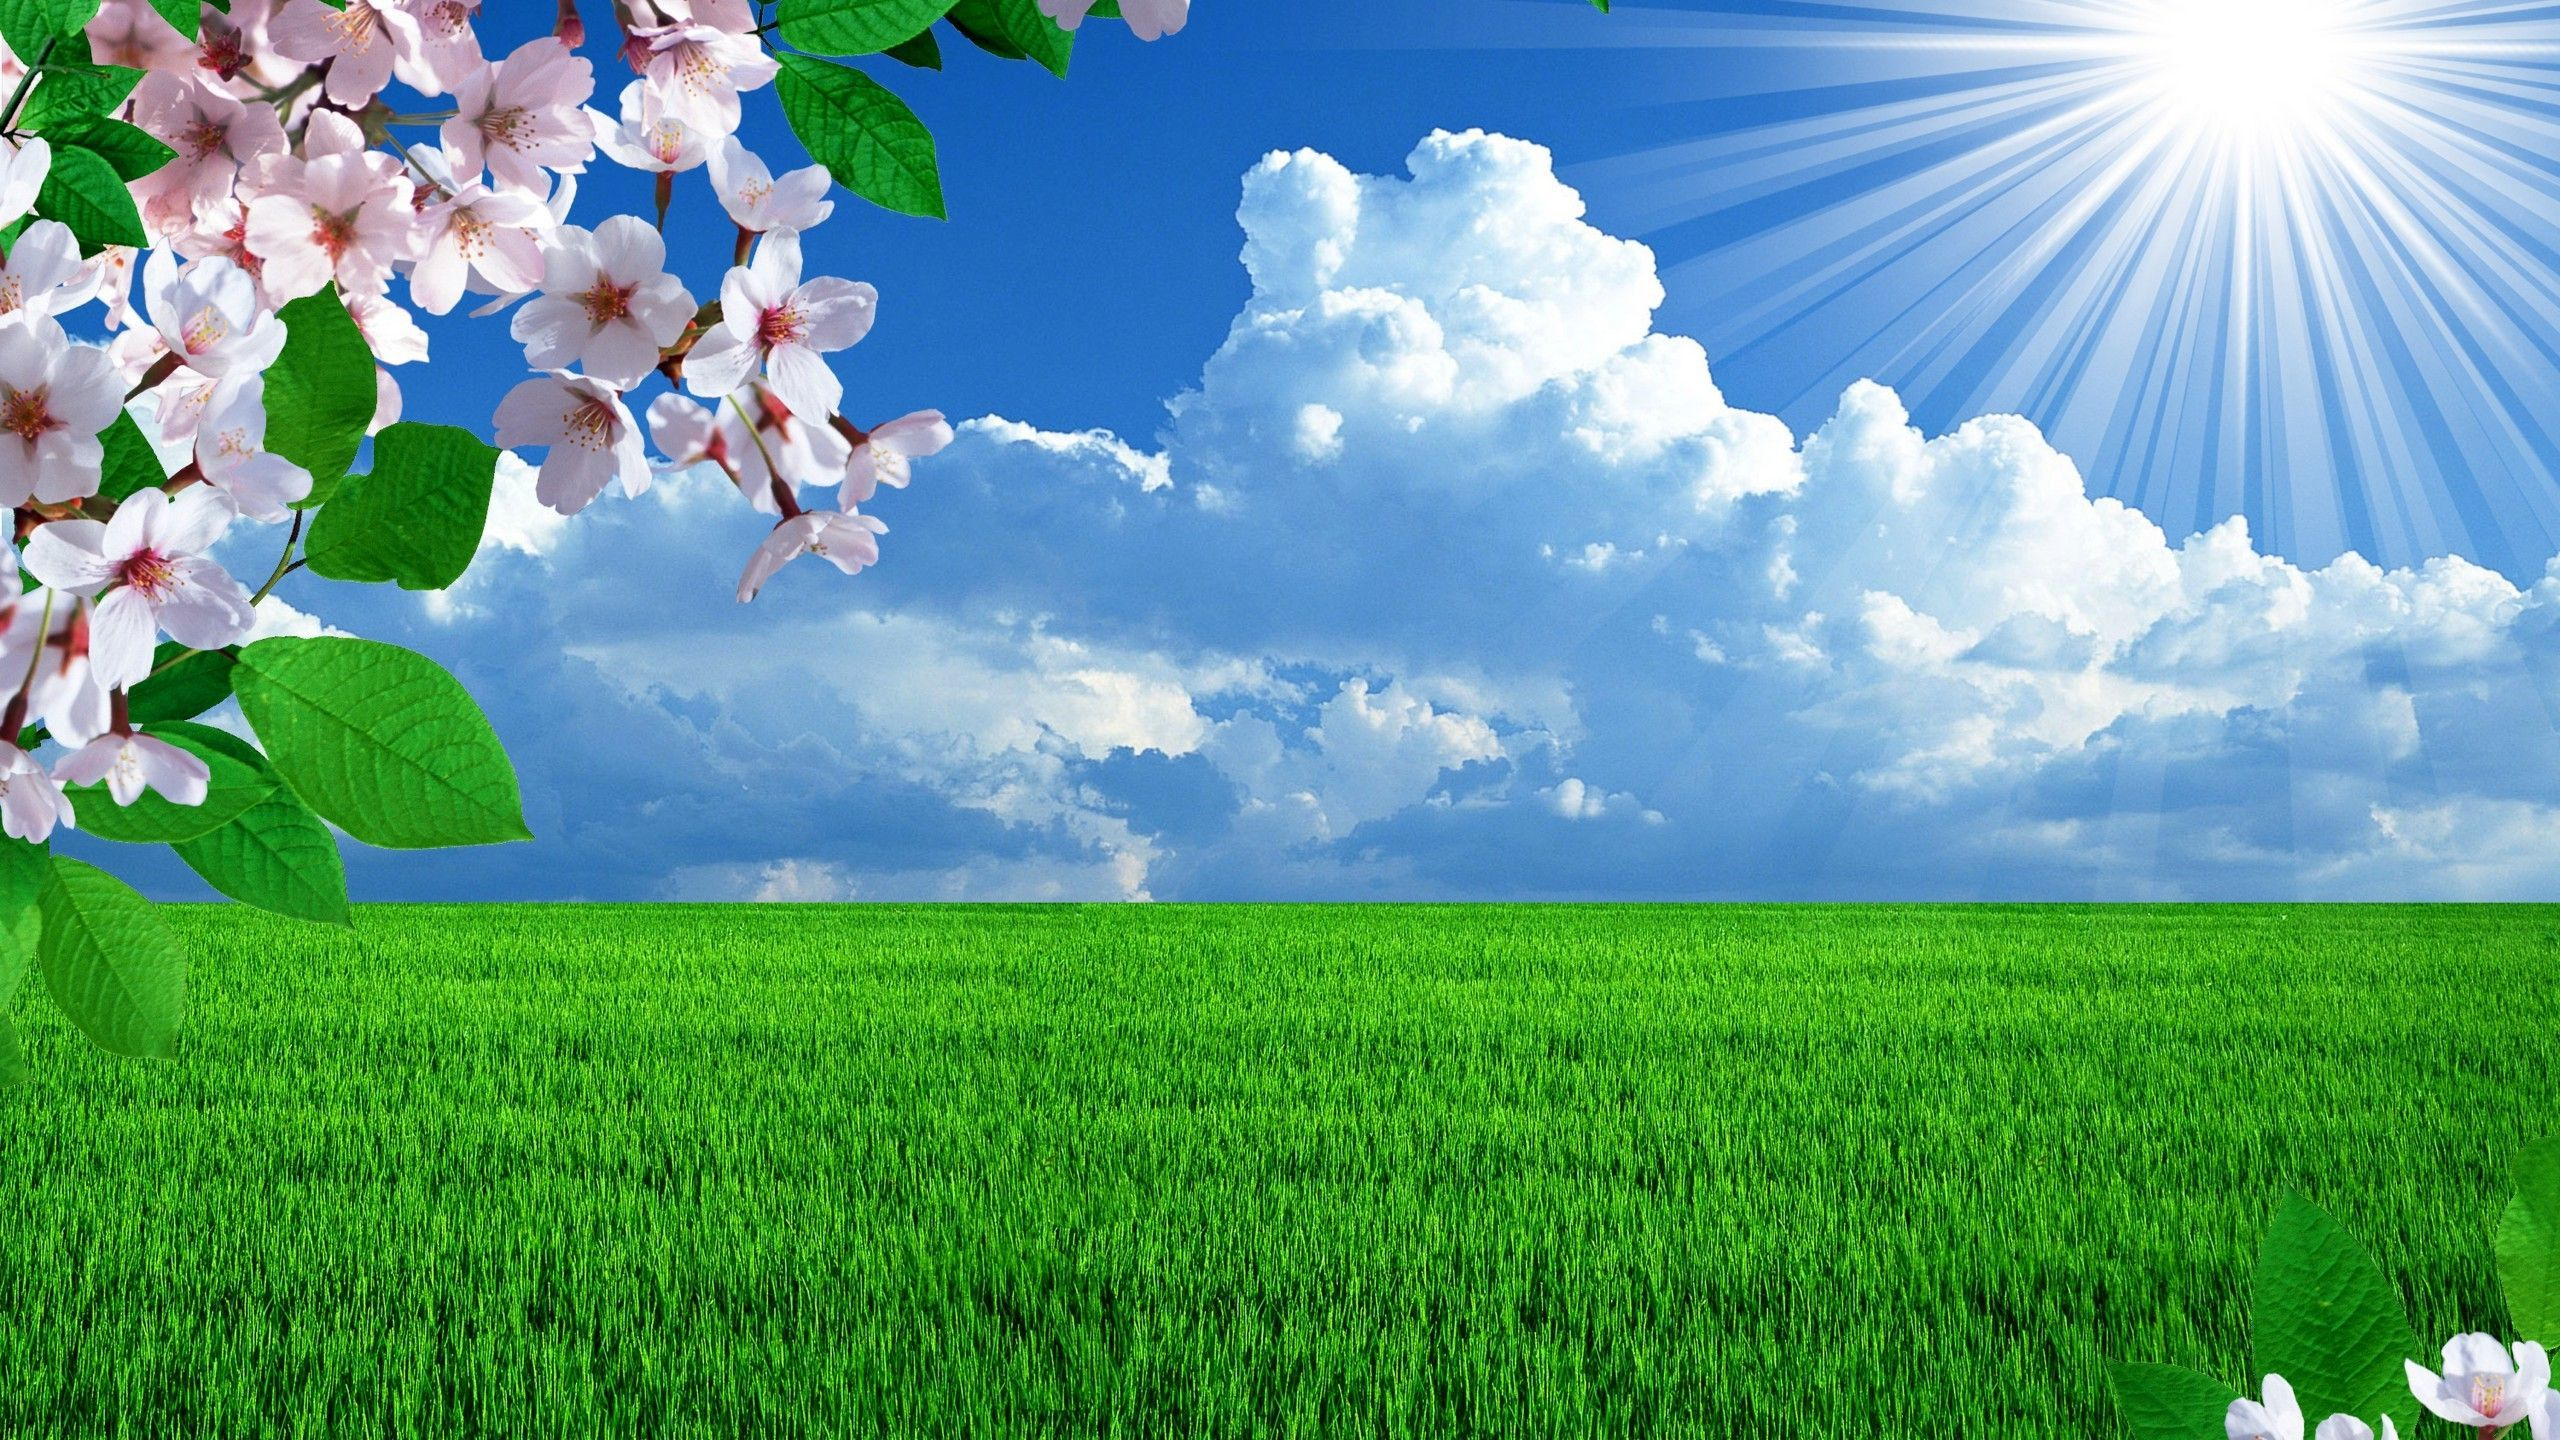 Beautiful spring Widescreen Wallpaper   14996 2560x1440